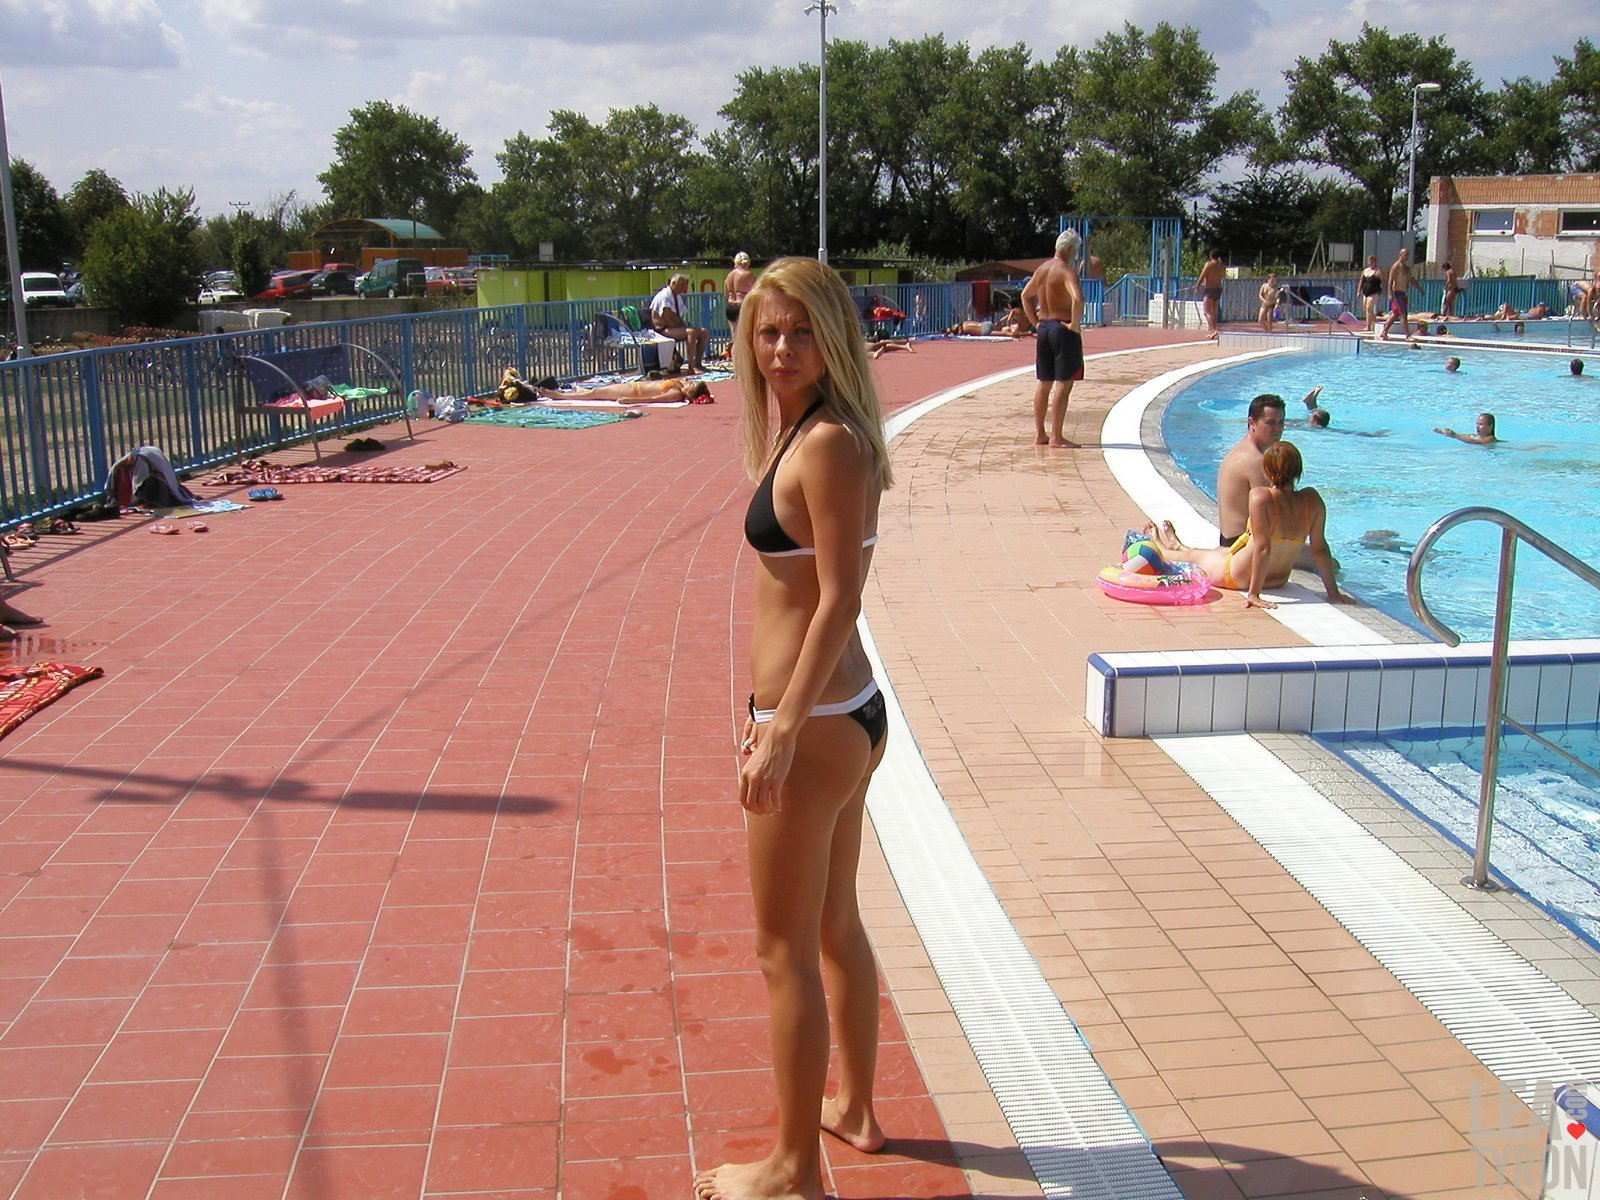 public naked girl young swimming